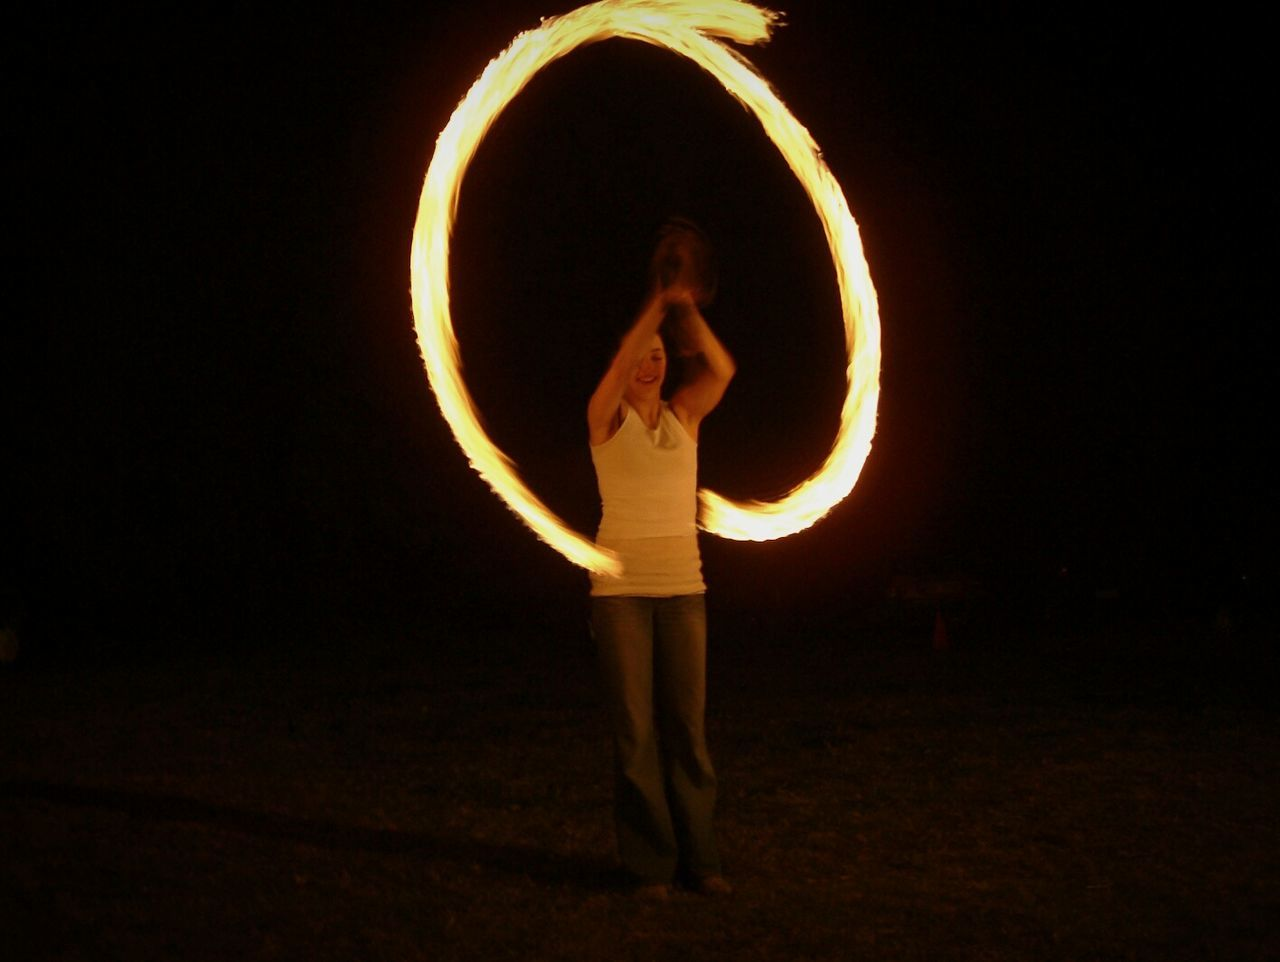 Fire Dancer Long Exposure Fire Flame Fuji Fire Ring Fire Twirling Photography In Motion